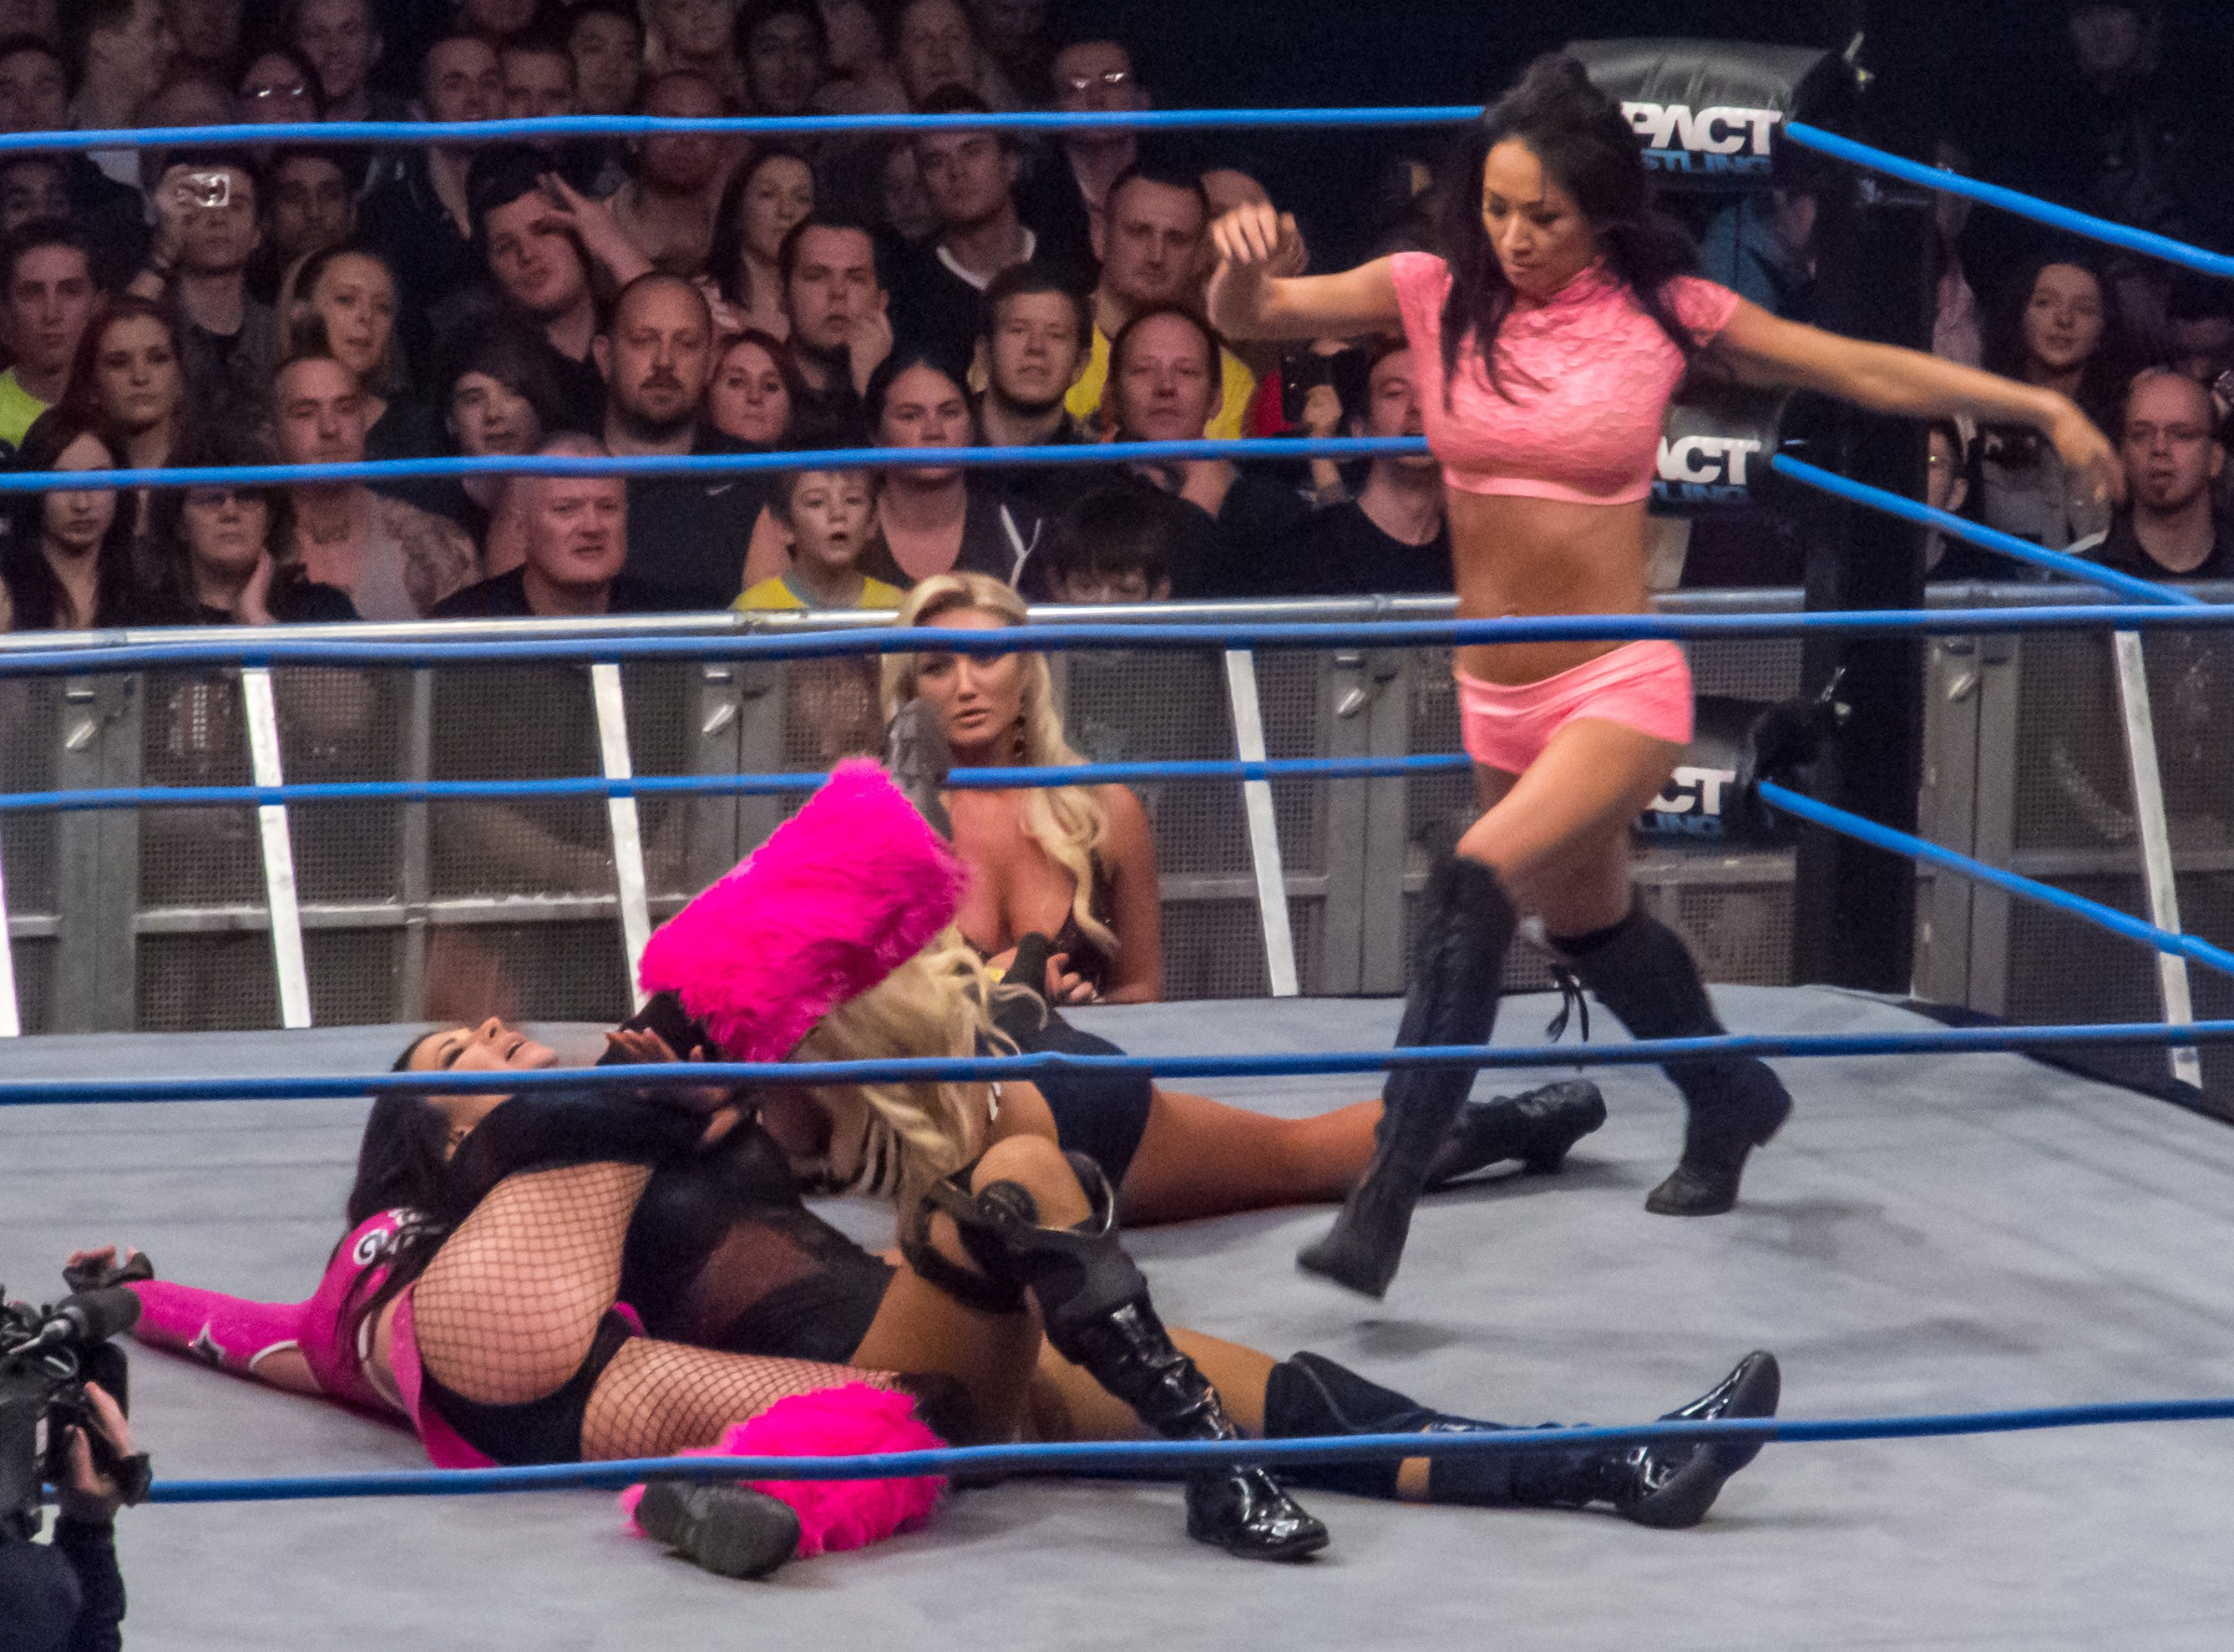 lilly-pron-wrestling-scandals-hot